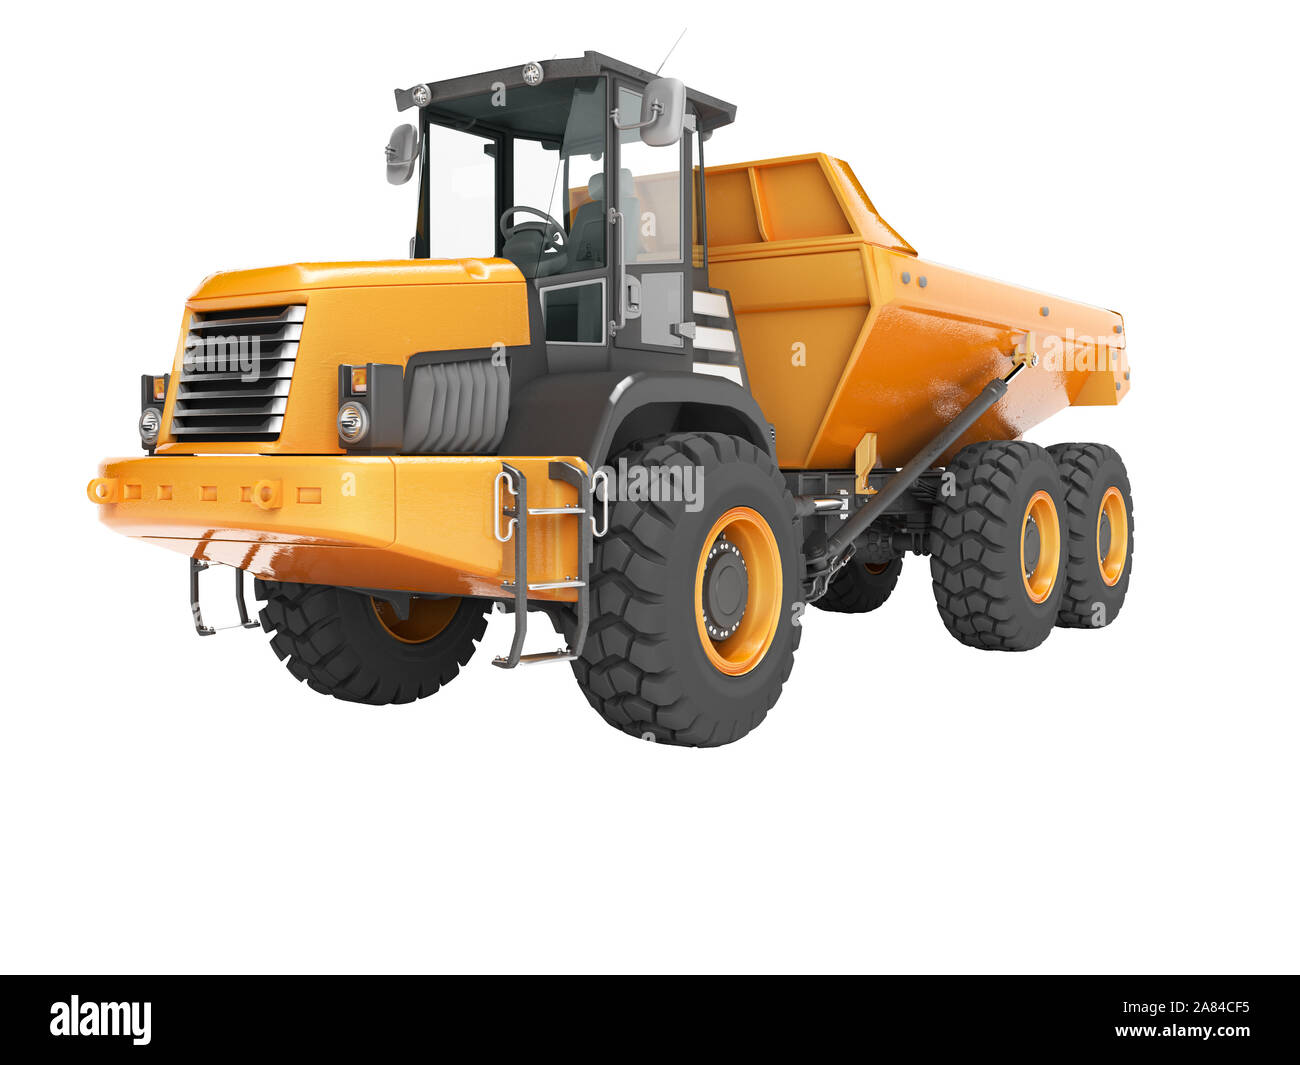 Construction equipment orange dump trucks with articulated frame isolated 3d render on white background no shadow Stock Photo